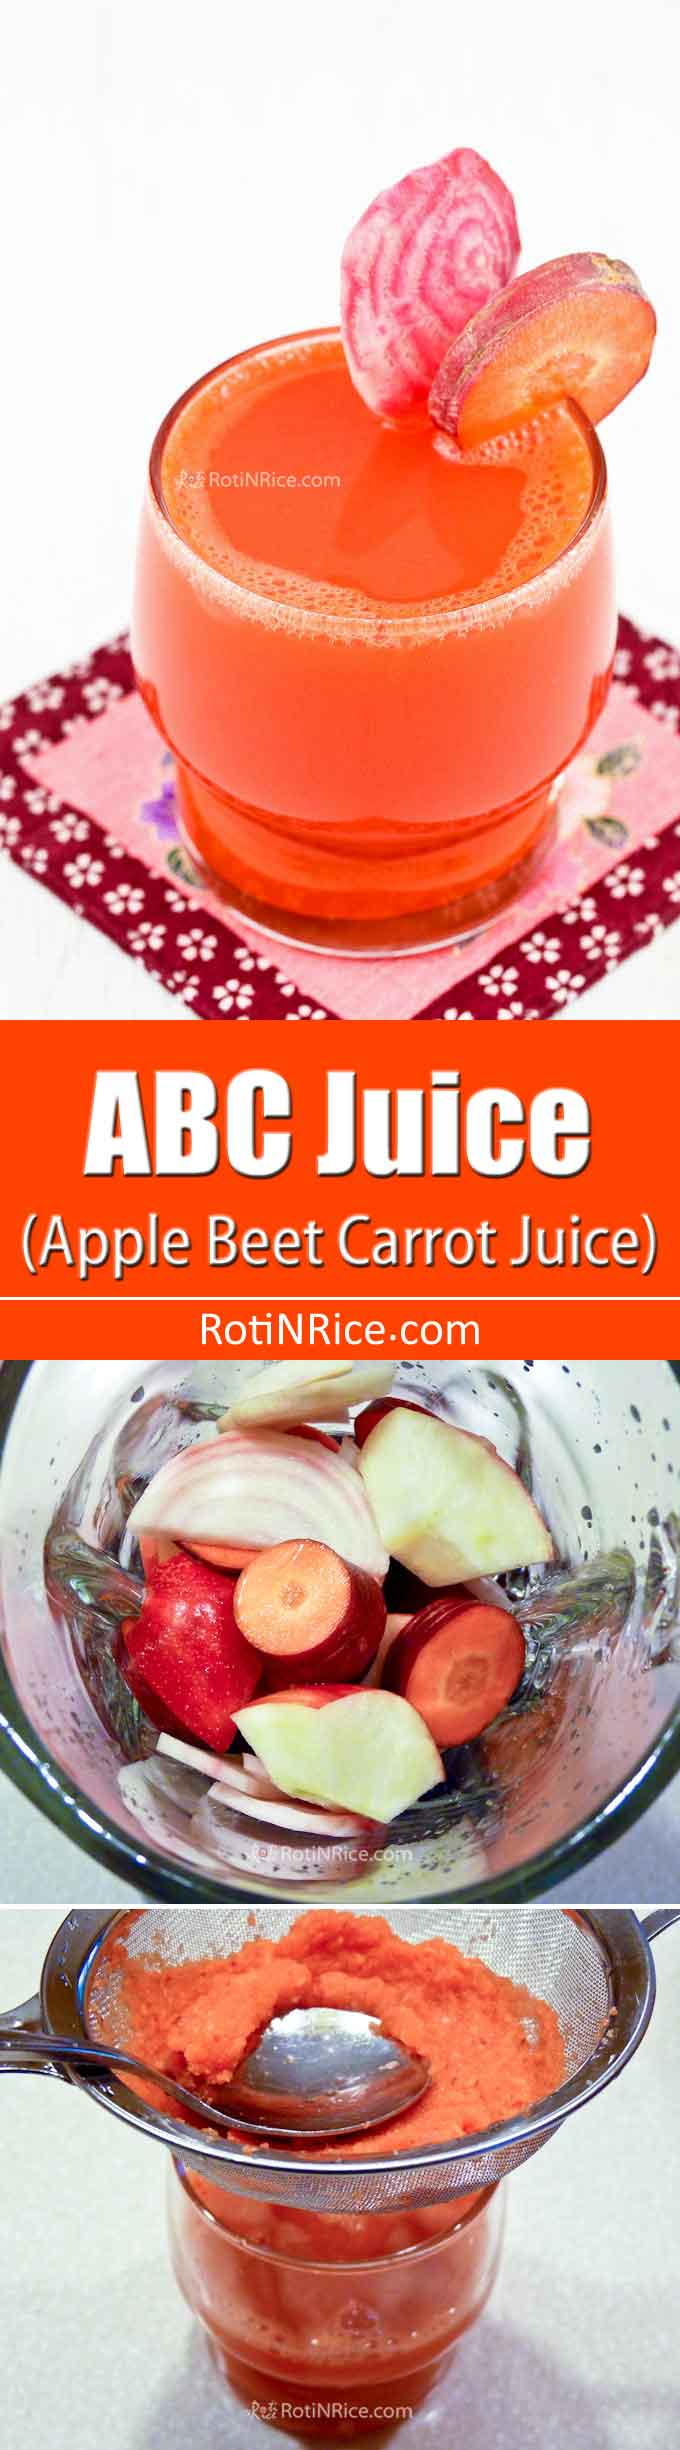 You can make this healthy delicious ABC Juice (Apple Beet Carrot Juice) with a hint of tanginess from lemon juice using a blender. It takes only 10 minutes. | RotiNRice.com